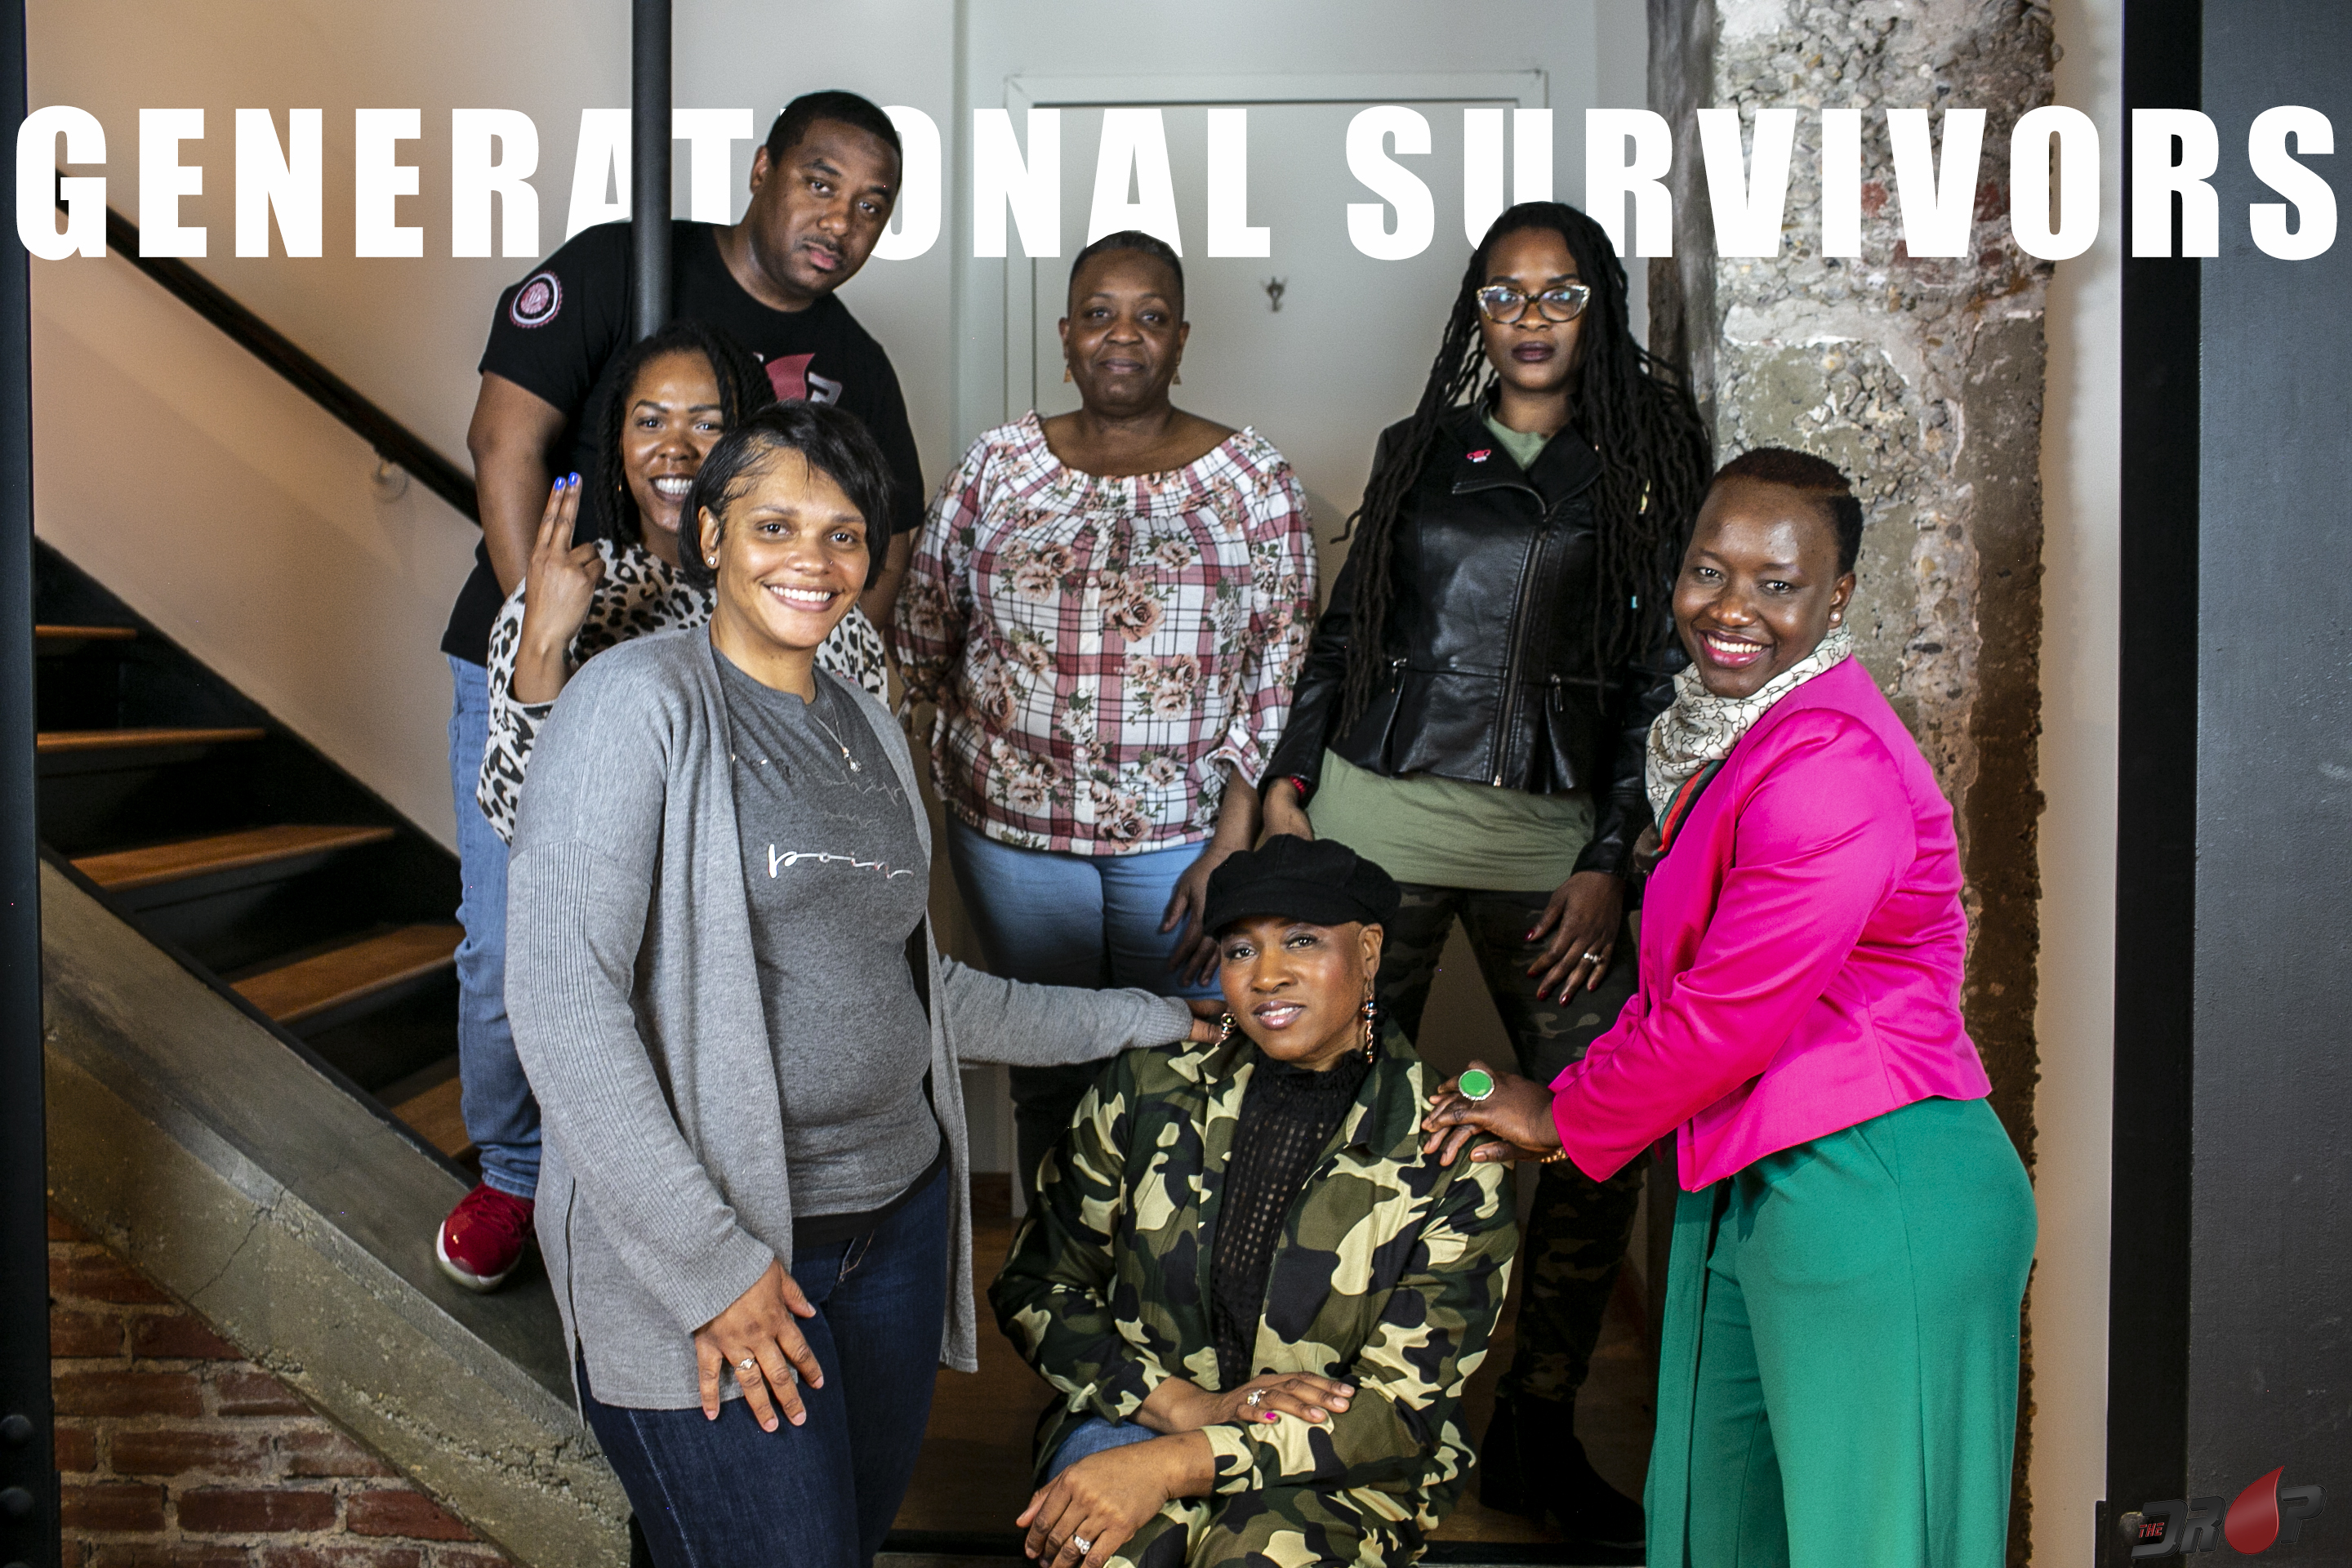 generational survivors interview